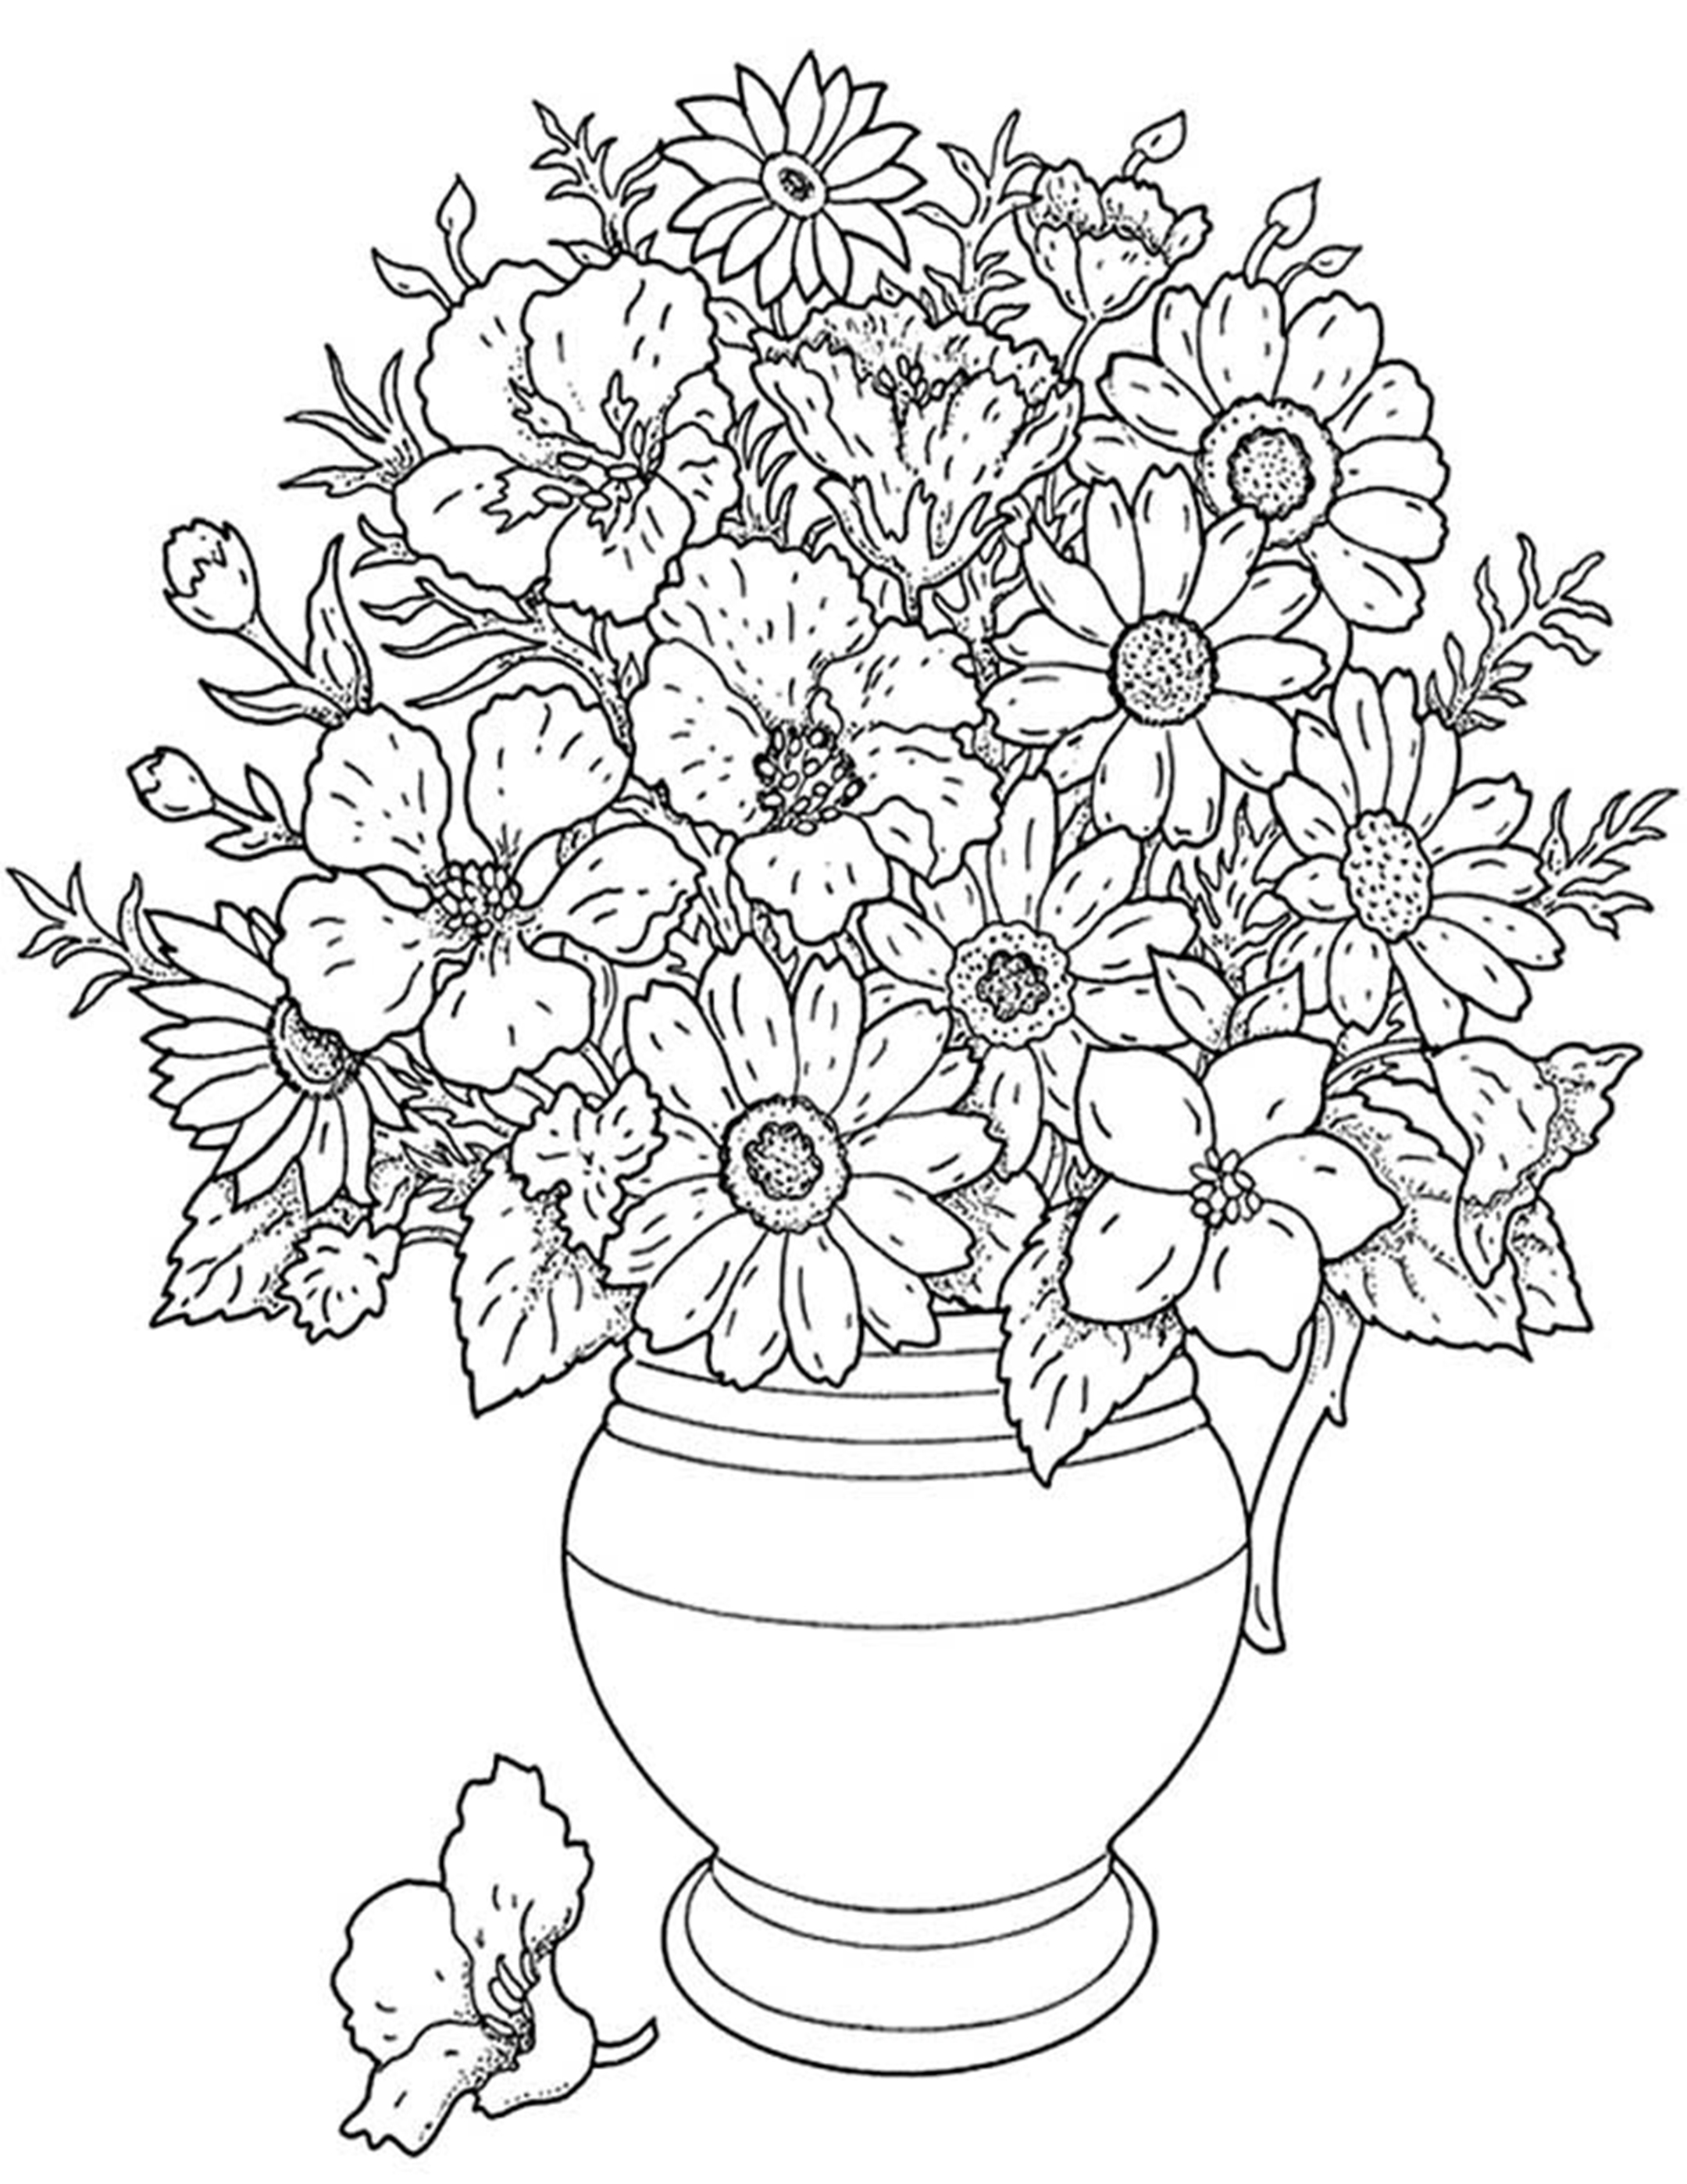 printable flowers to color free printable flower coloring pages for kids best printable flowers to color